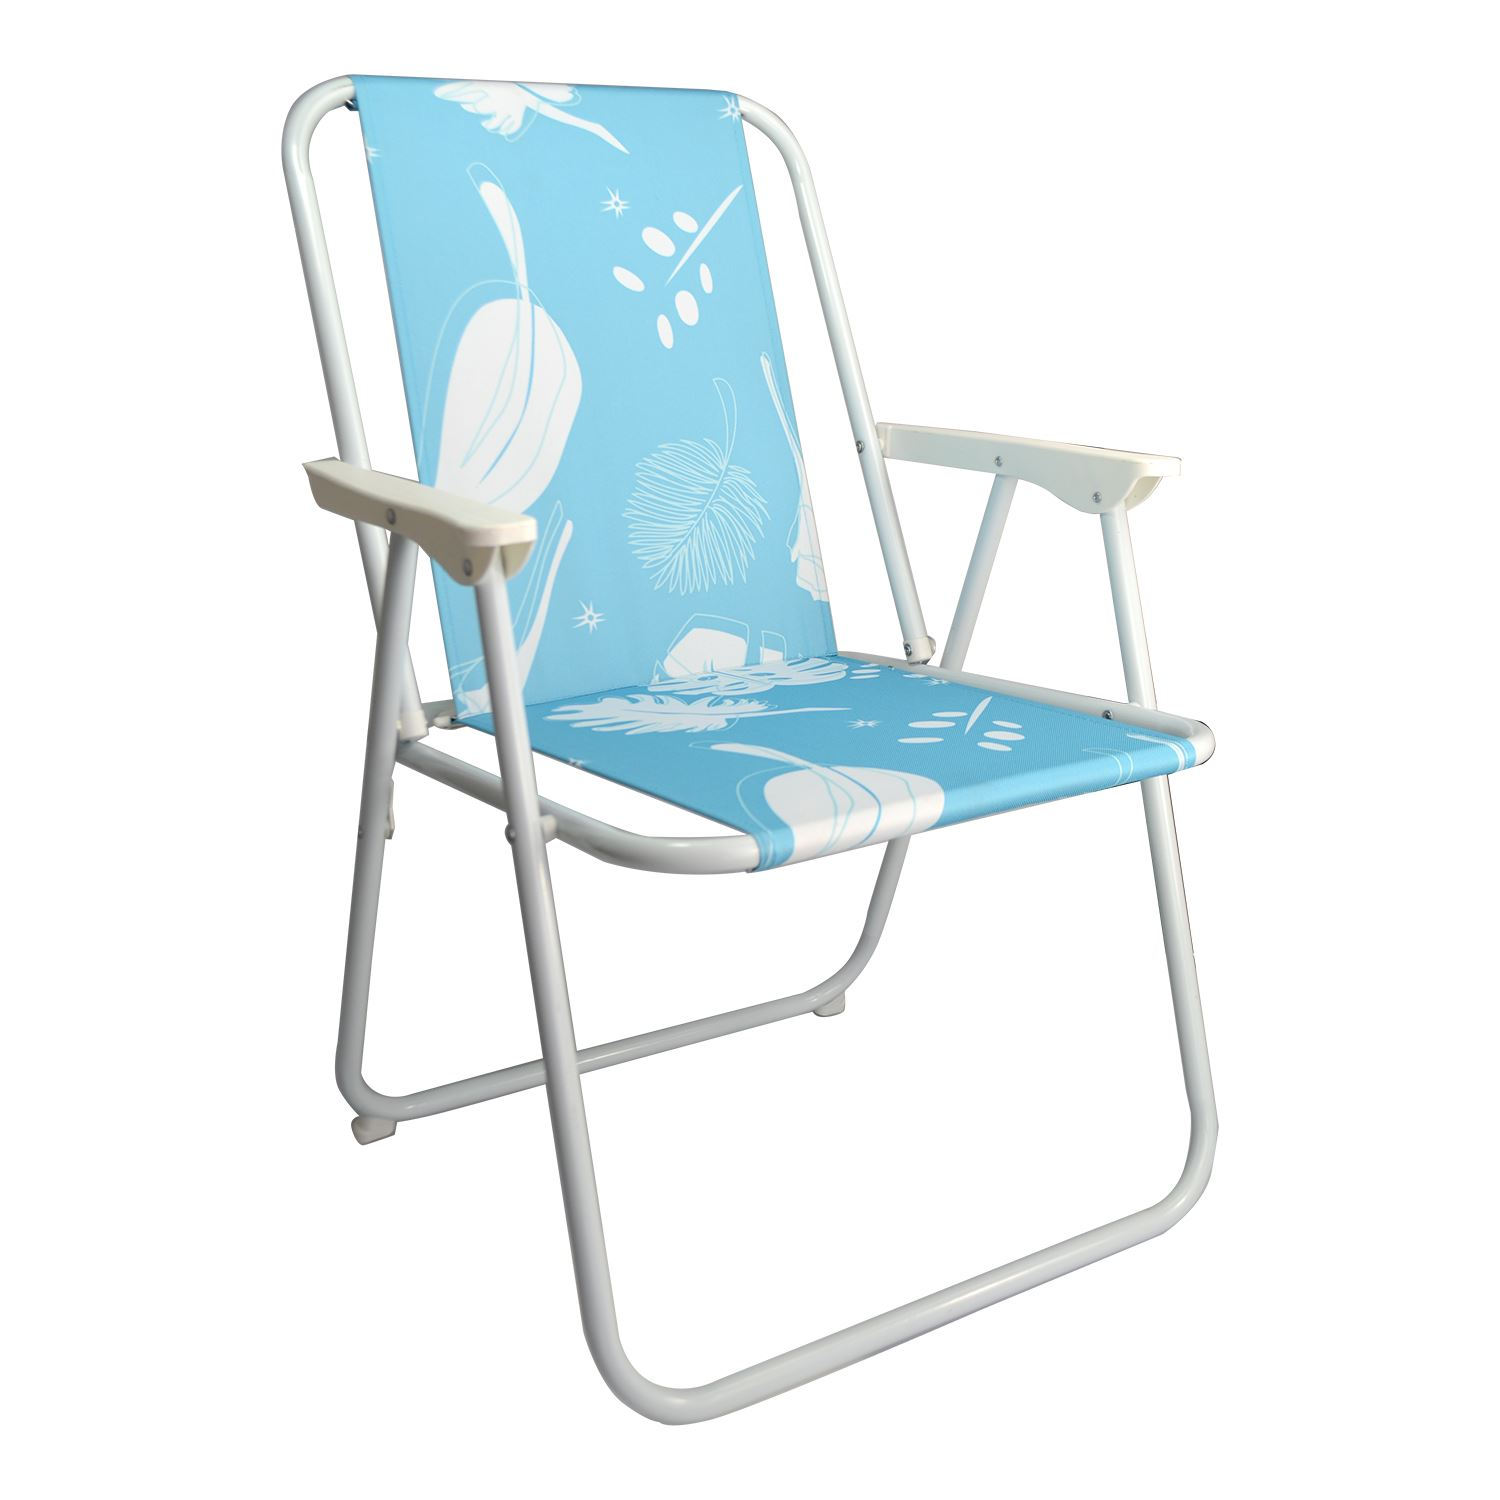 festival folding chair florida electric garden patio spring deck picnic camping beach fishing outdoor seat | ebay